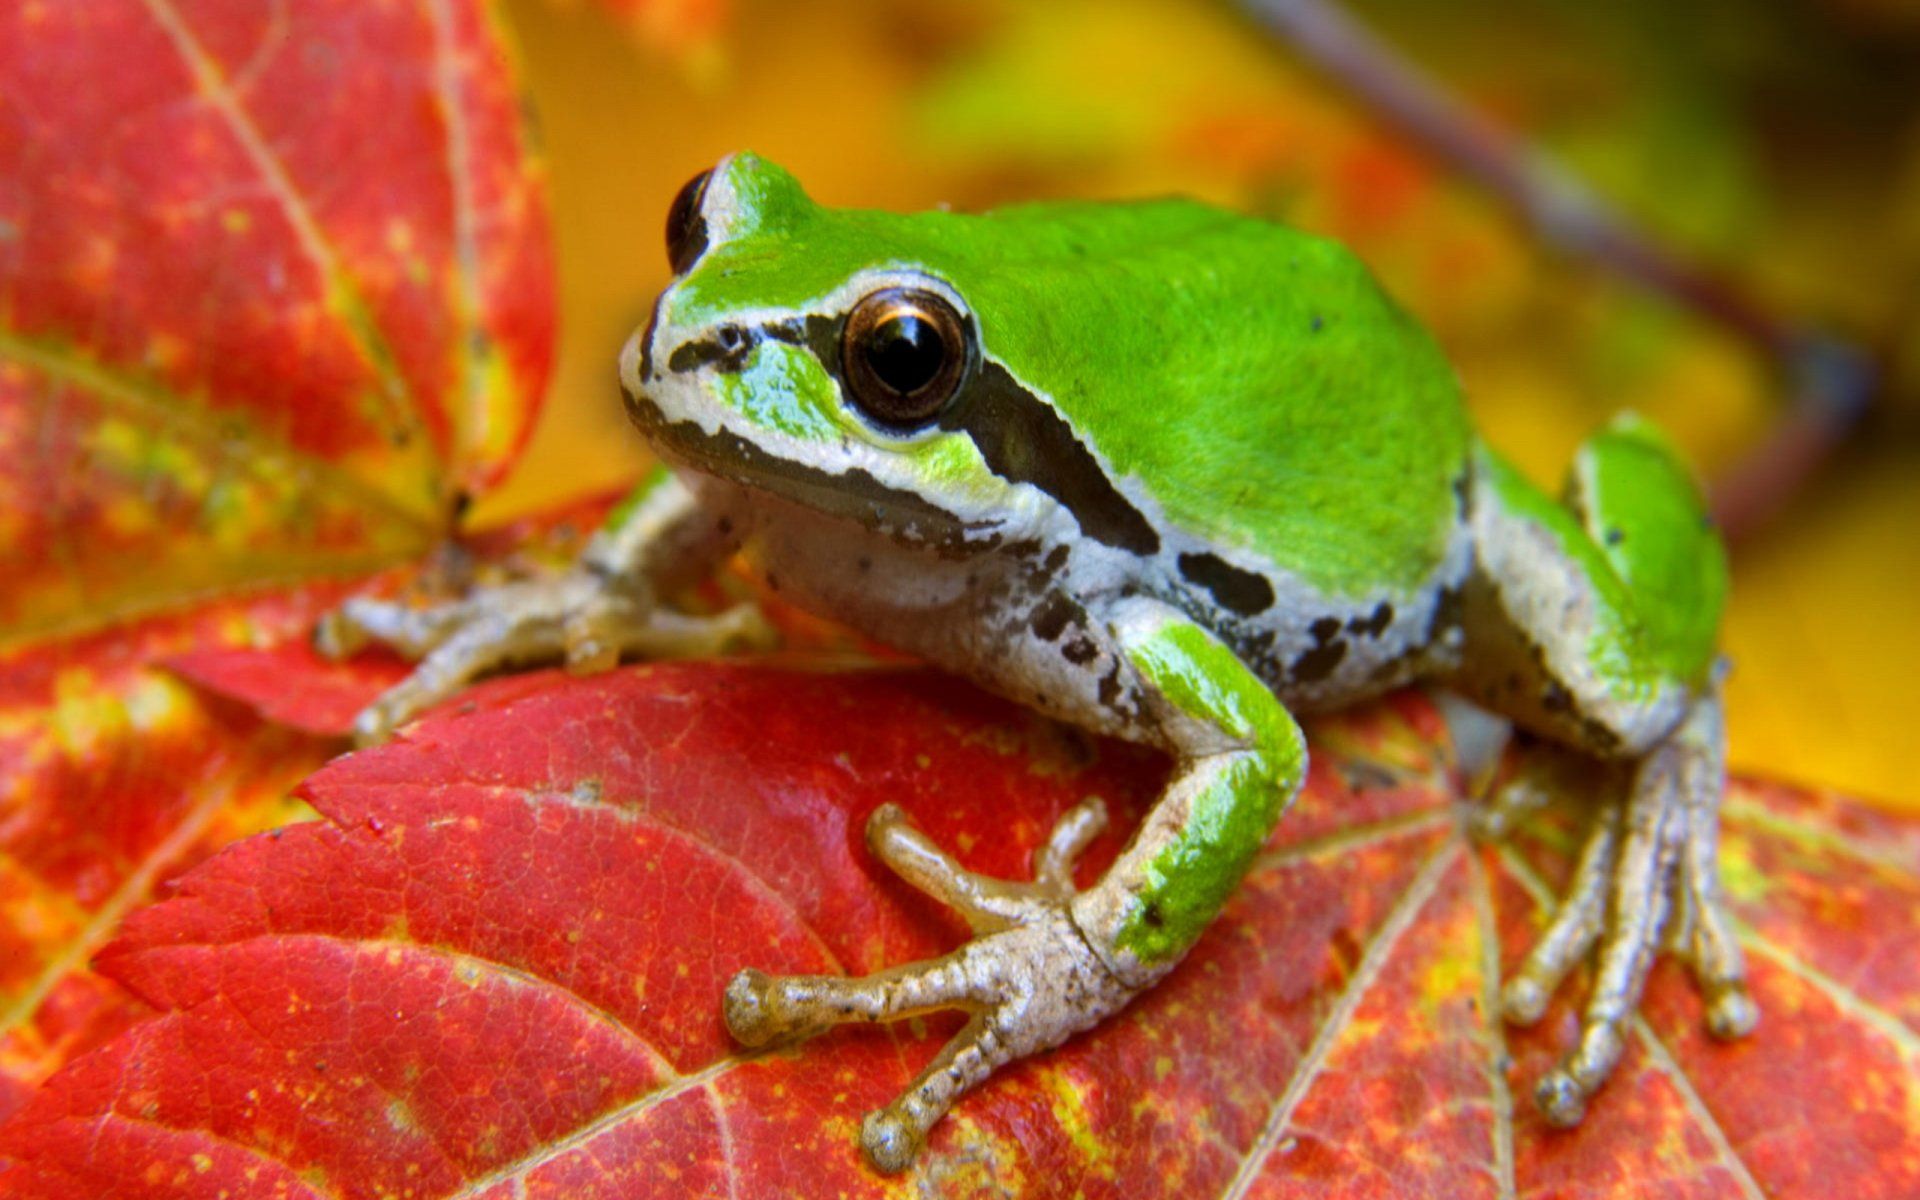 Fall Iphone Wallpaper Pinterest Frog Hd Wallpaper Background Image 2560x1600 Id